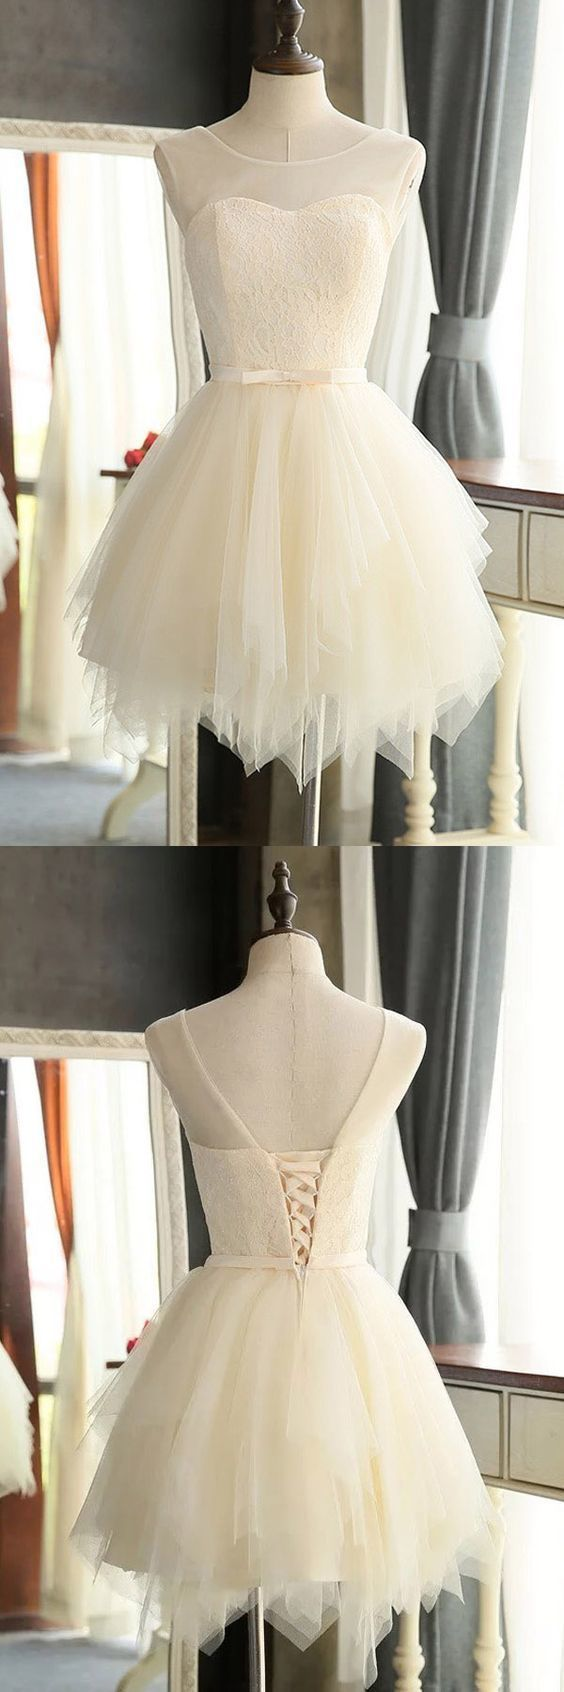 Lovely High Quality Mini Charming Tulle Short Prom Dresses Homecoming Dresses,